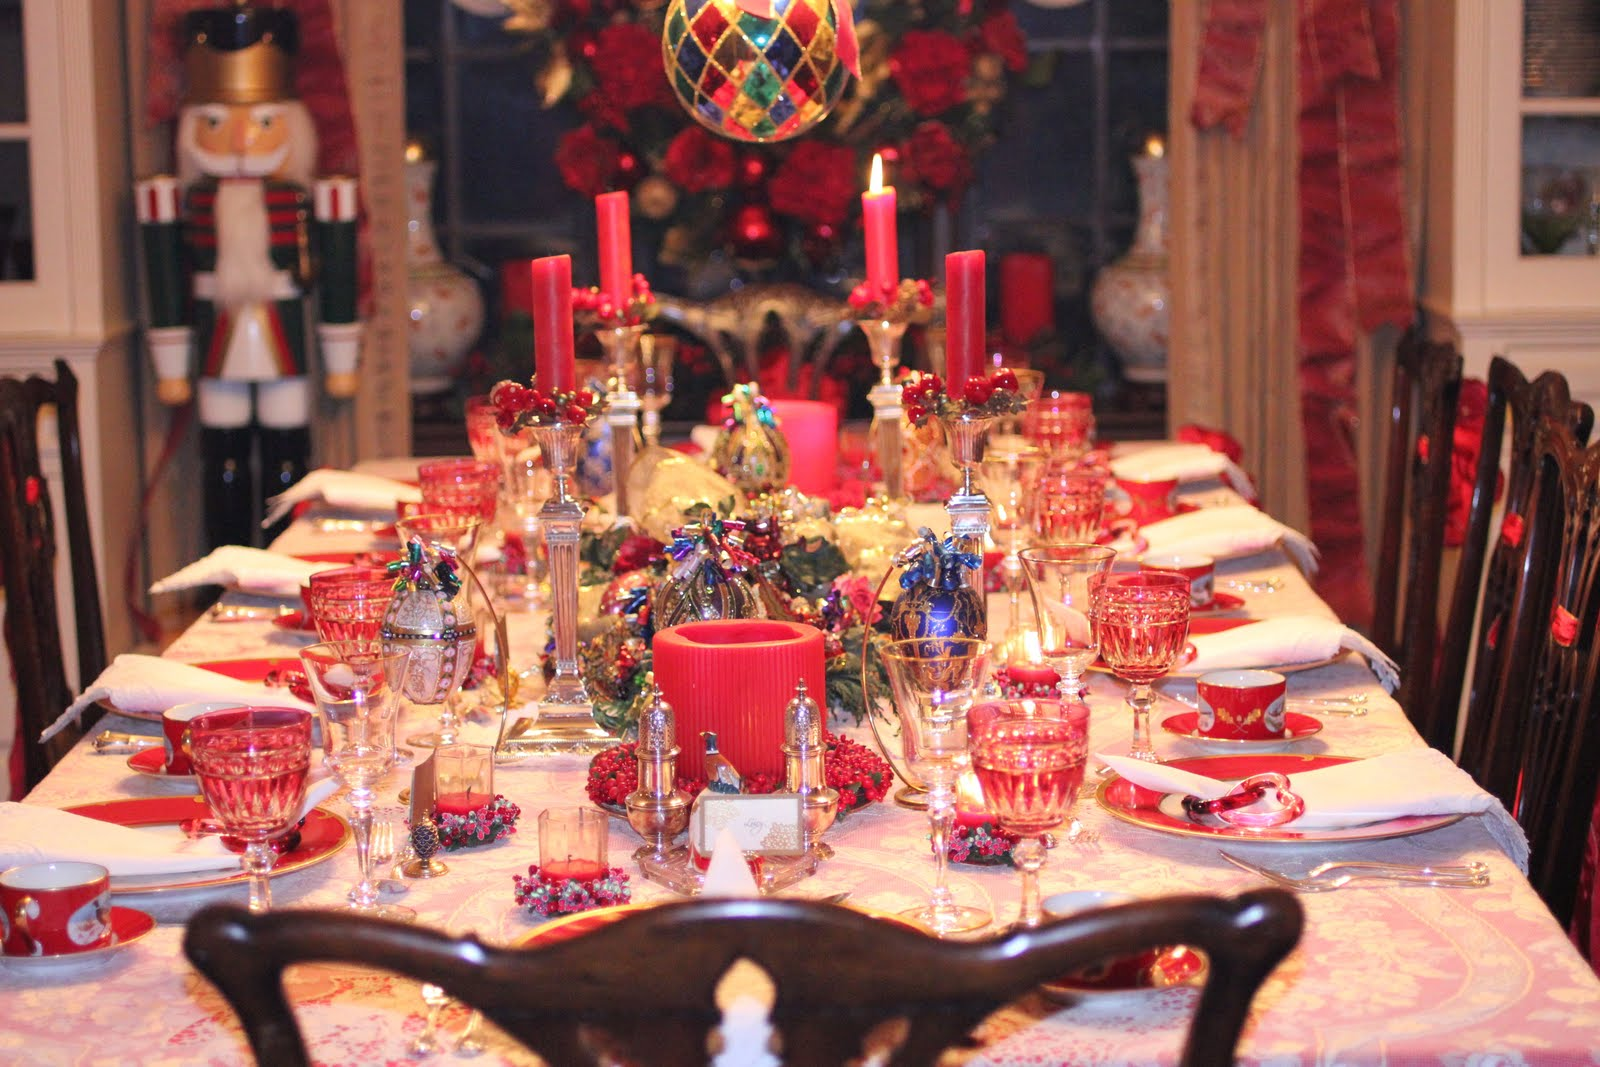 Christmas dinner party. Their home is decorated with such whimsy